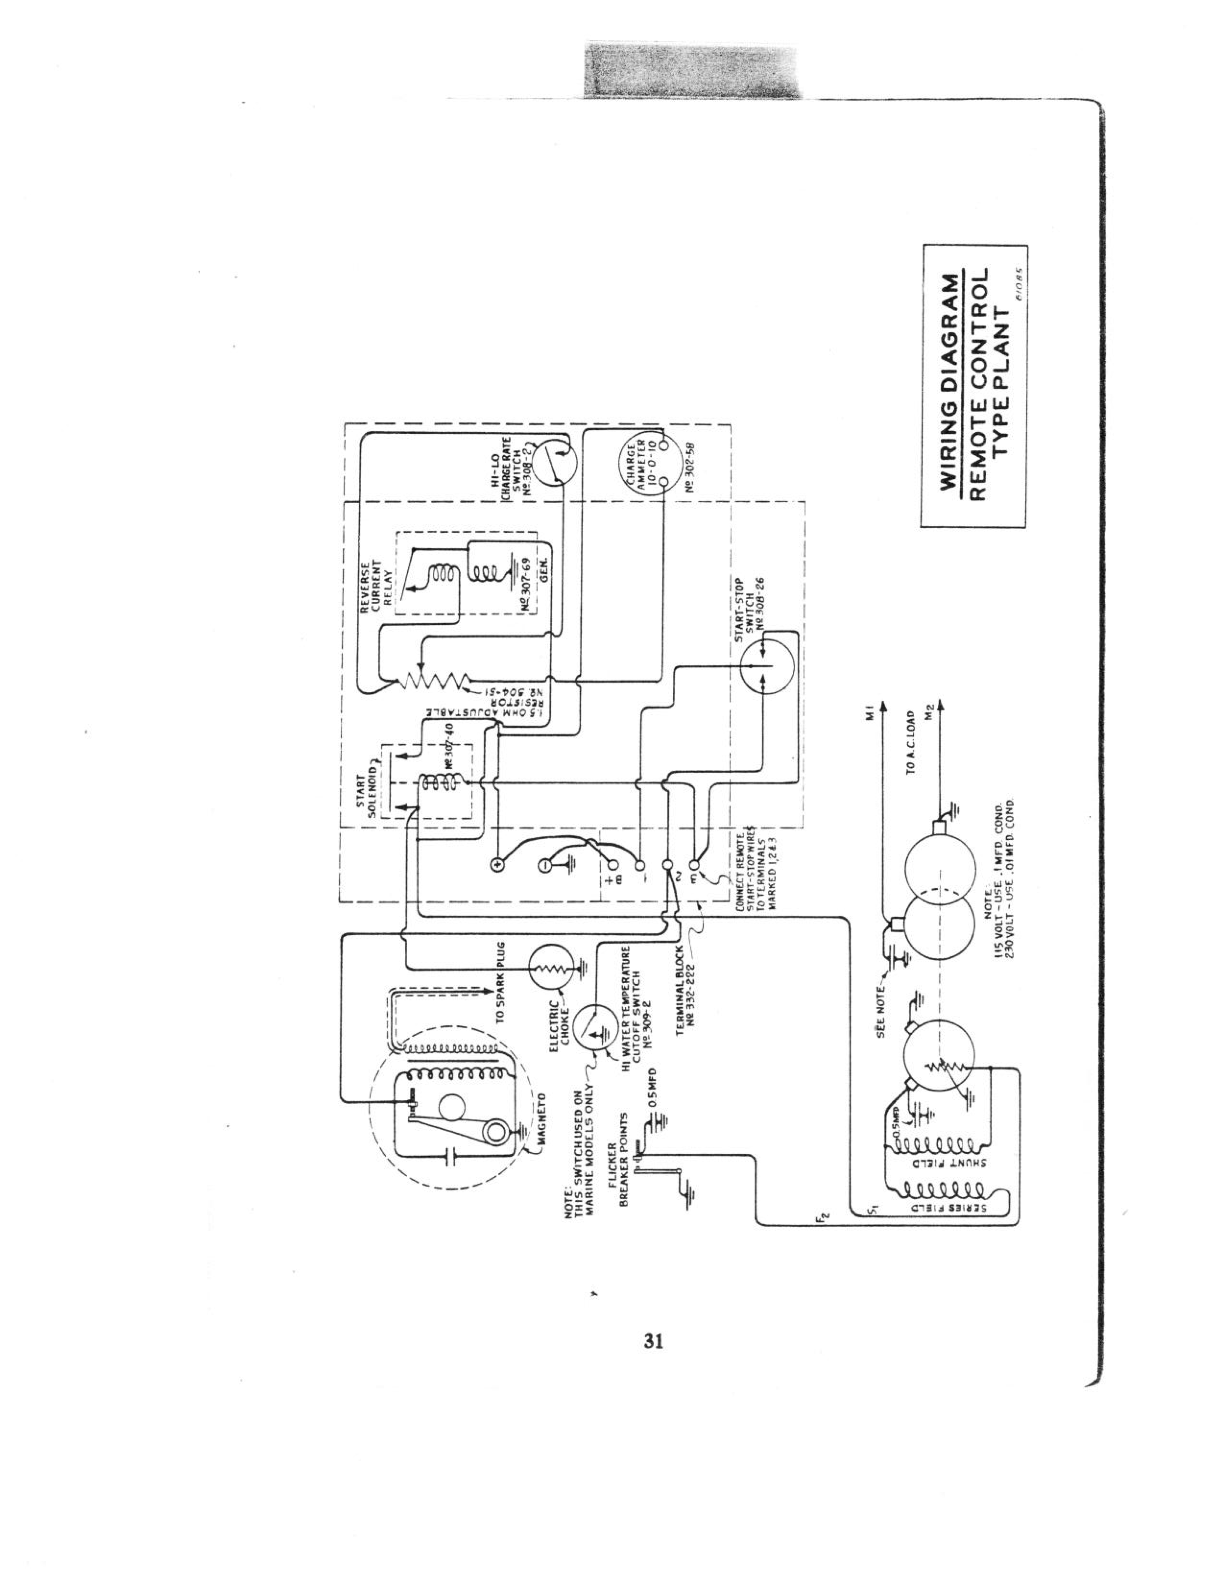 i am looking for a schematic for an onan generator 436296